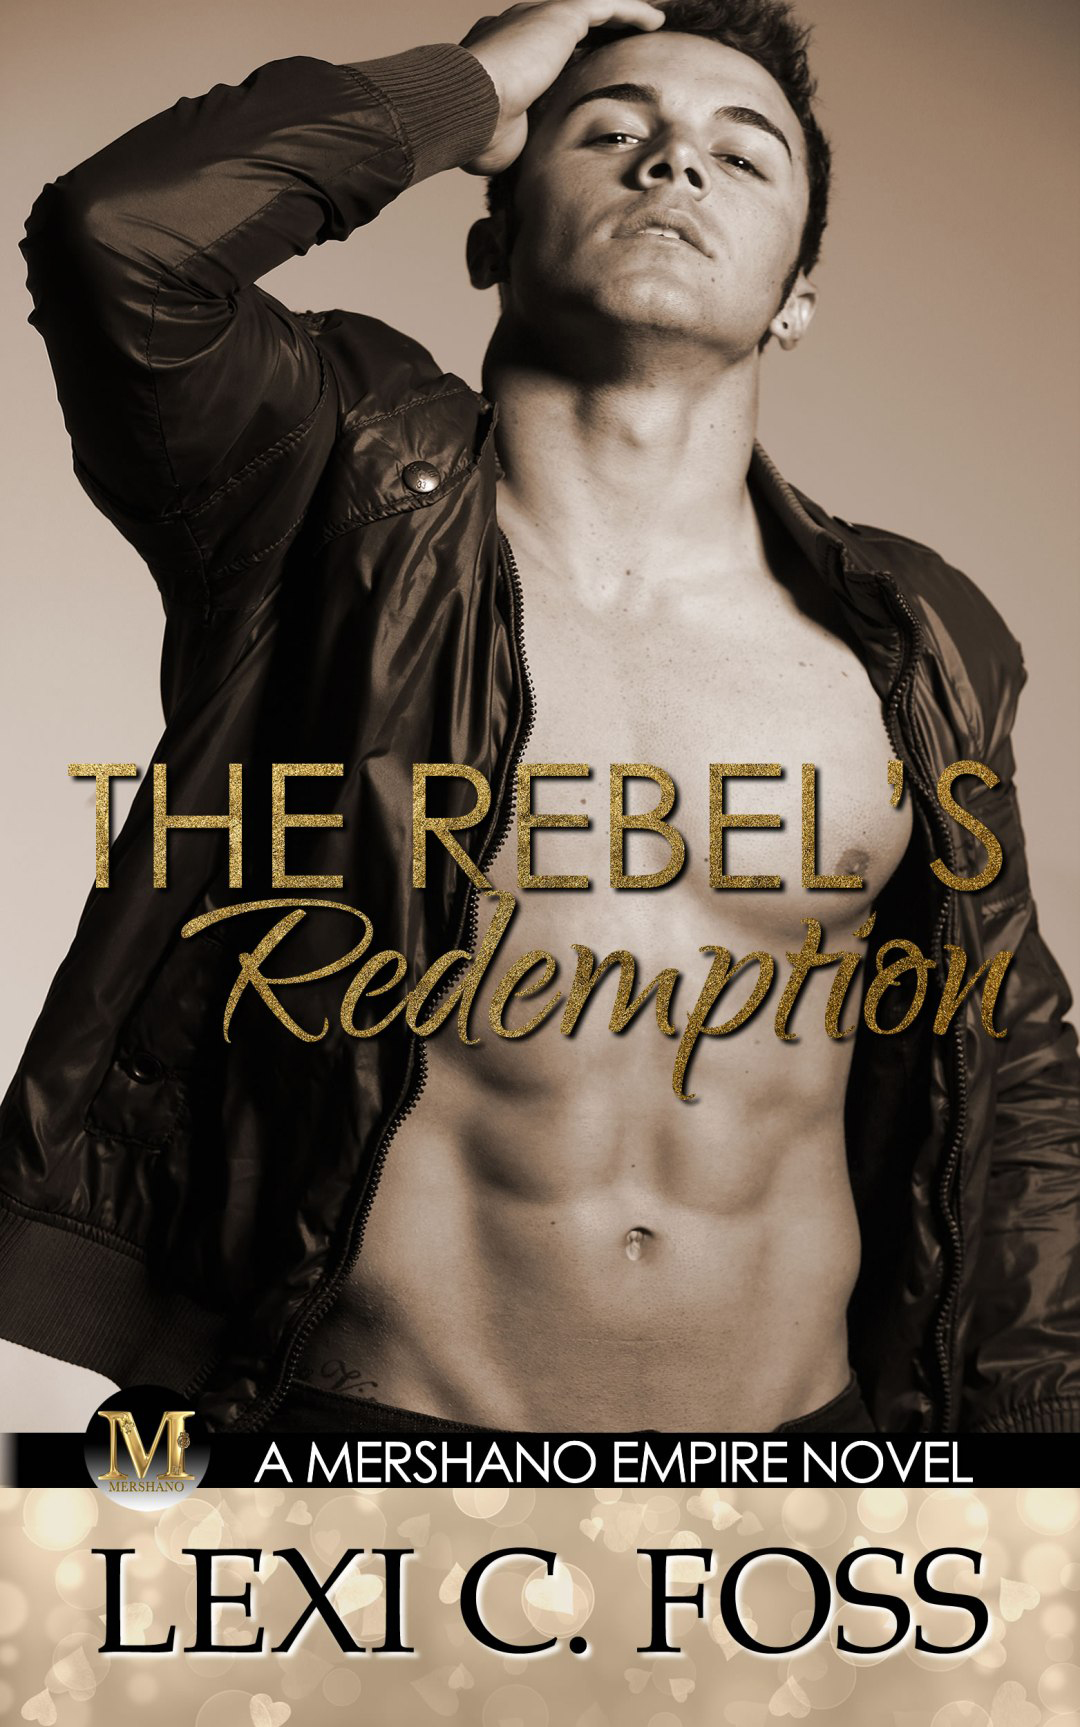 THE REBEL REDEMPTION